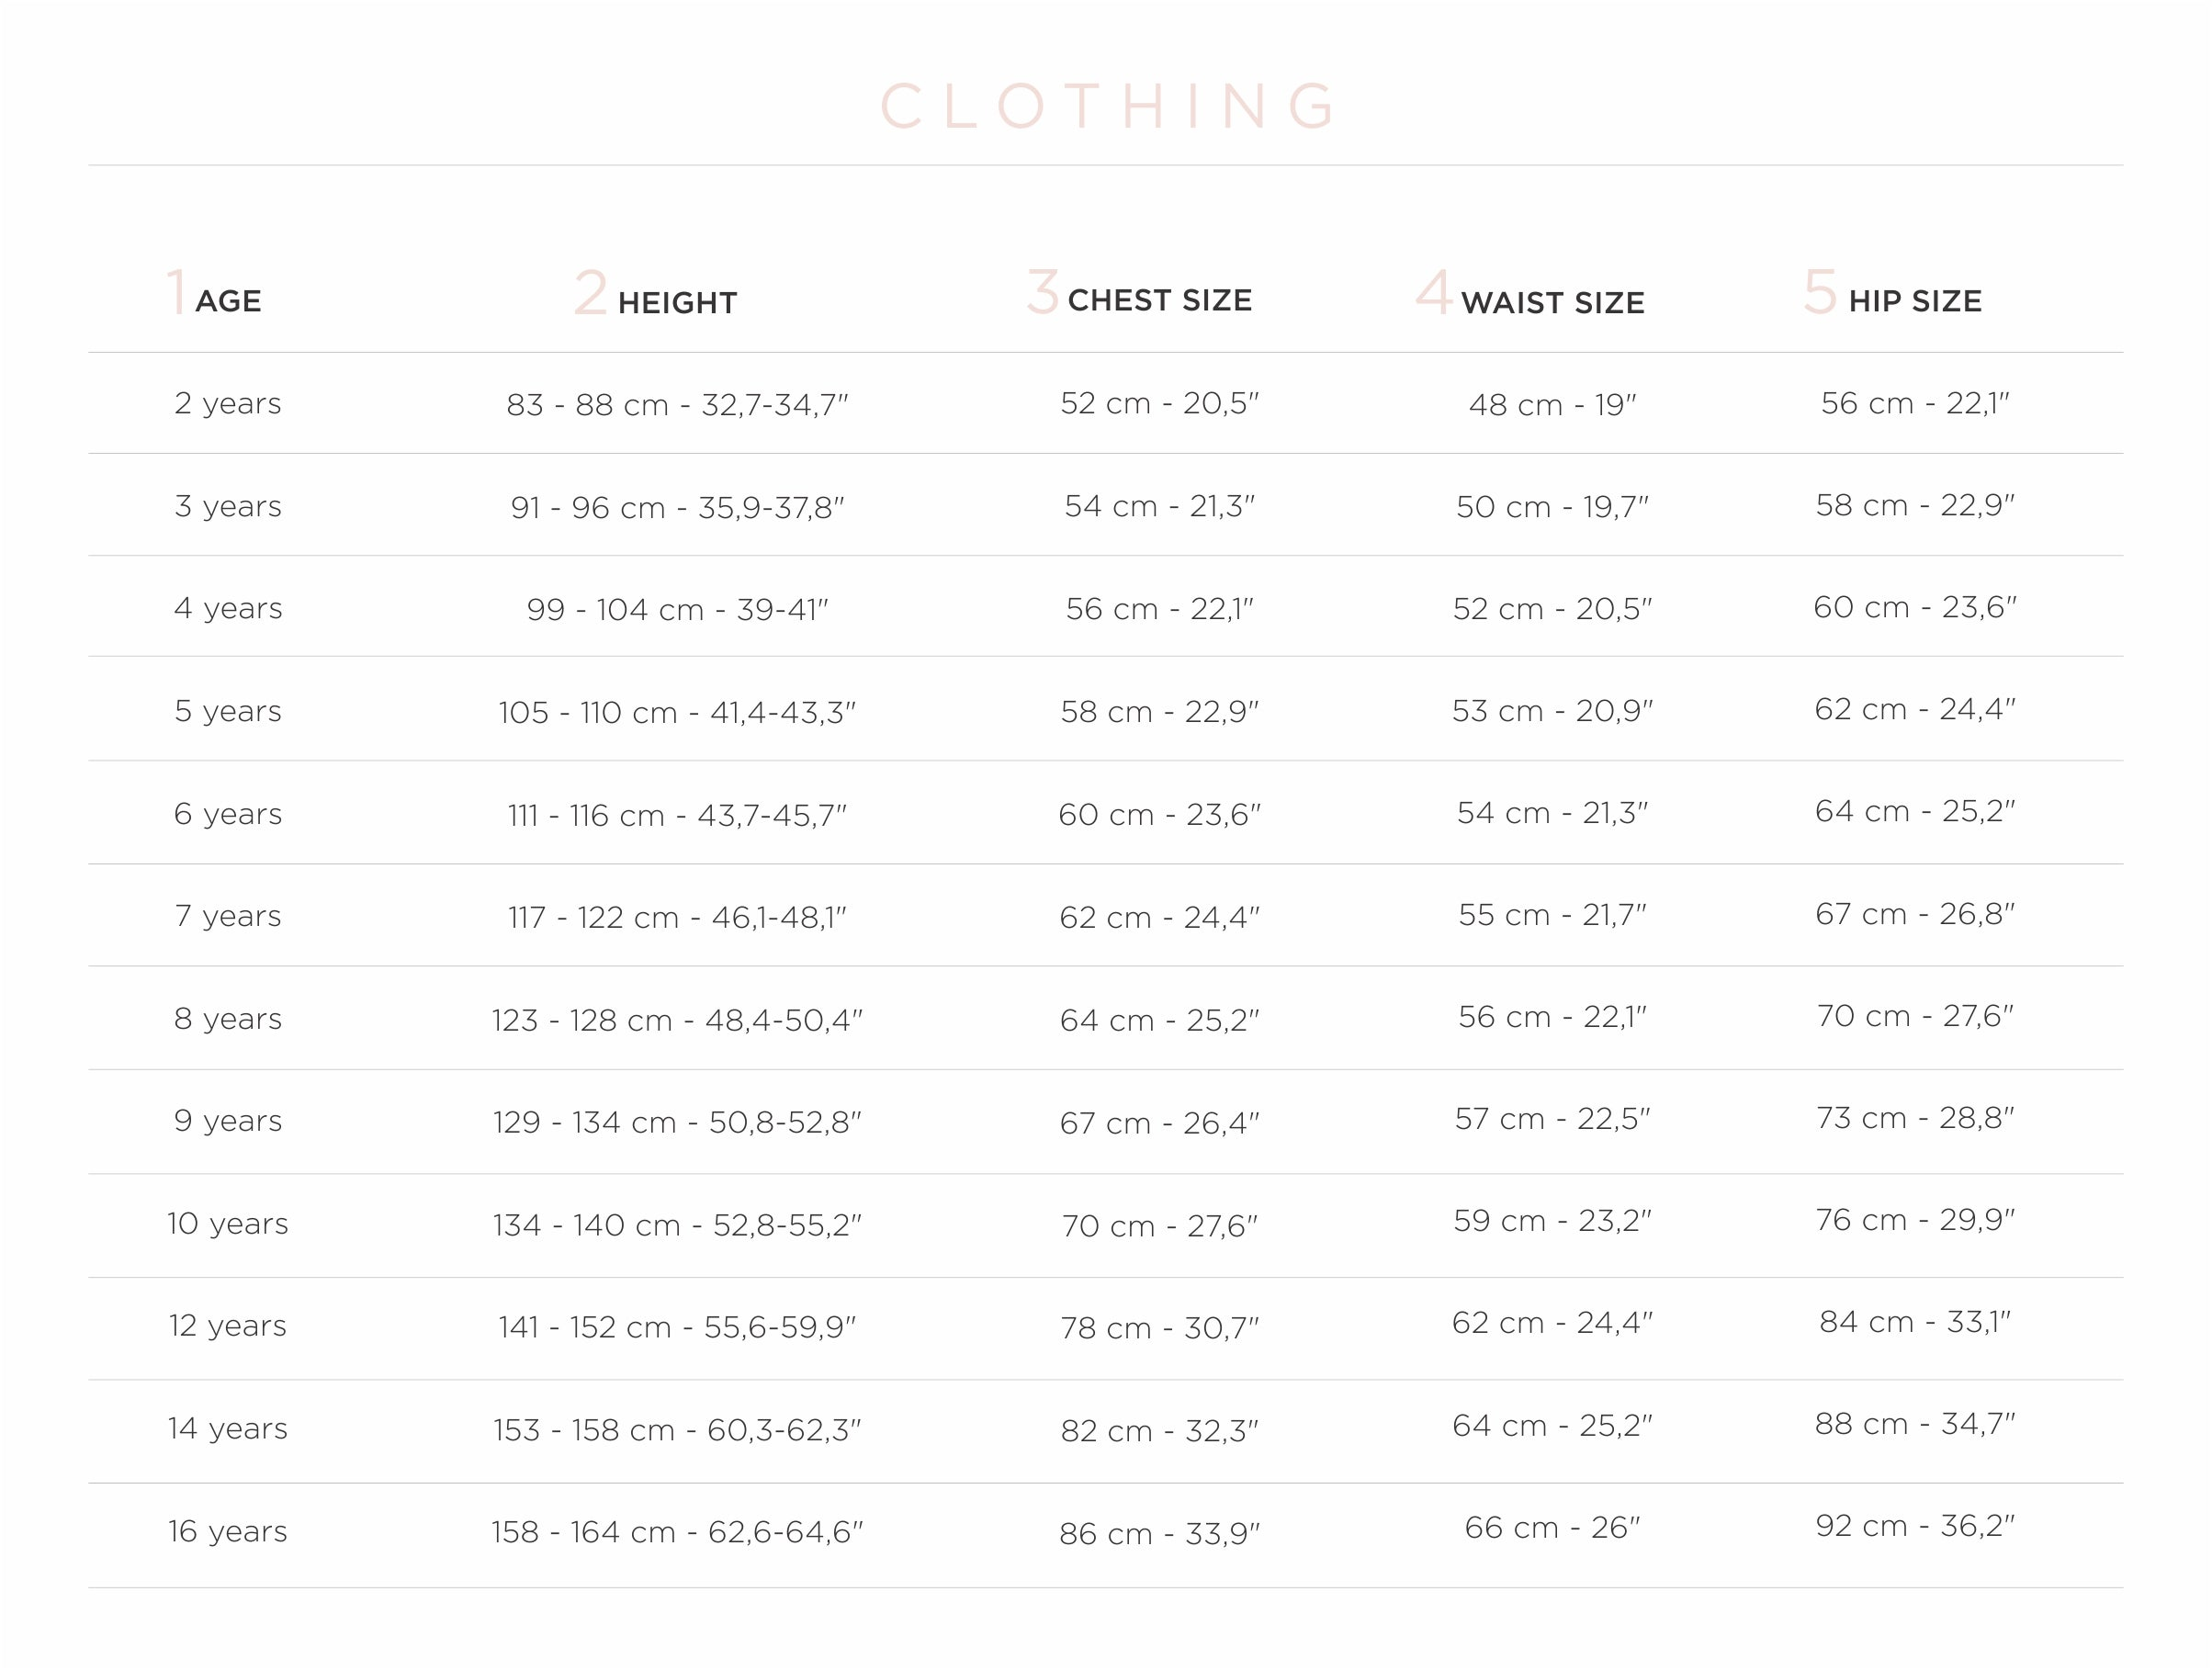 6465fcaeb0 BOSS Hugo Boss Size Chart. This guideline is a reference only to average clothing  sizes. For more accurate size guidance, please refer to the product ...